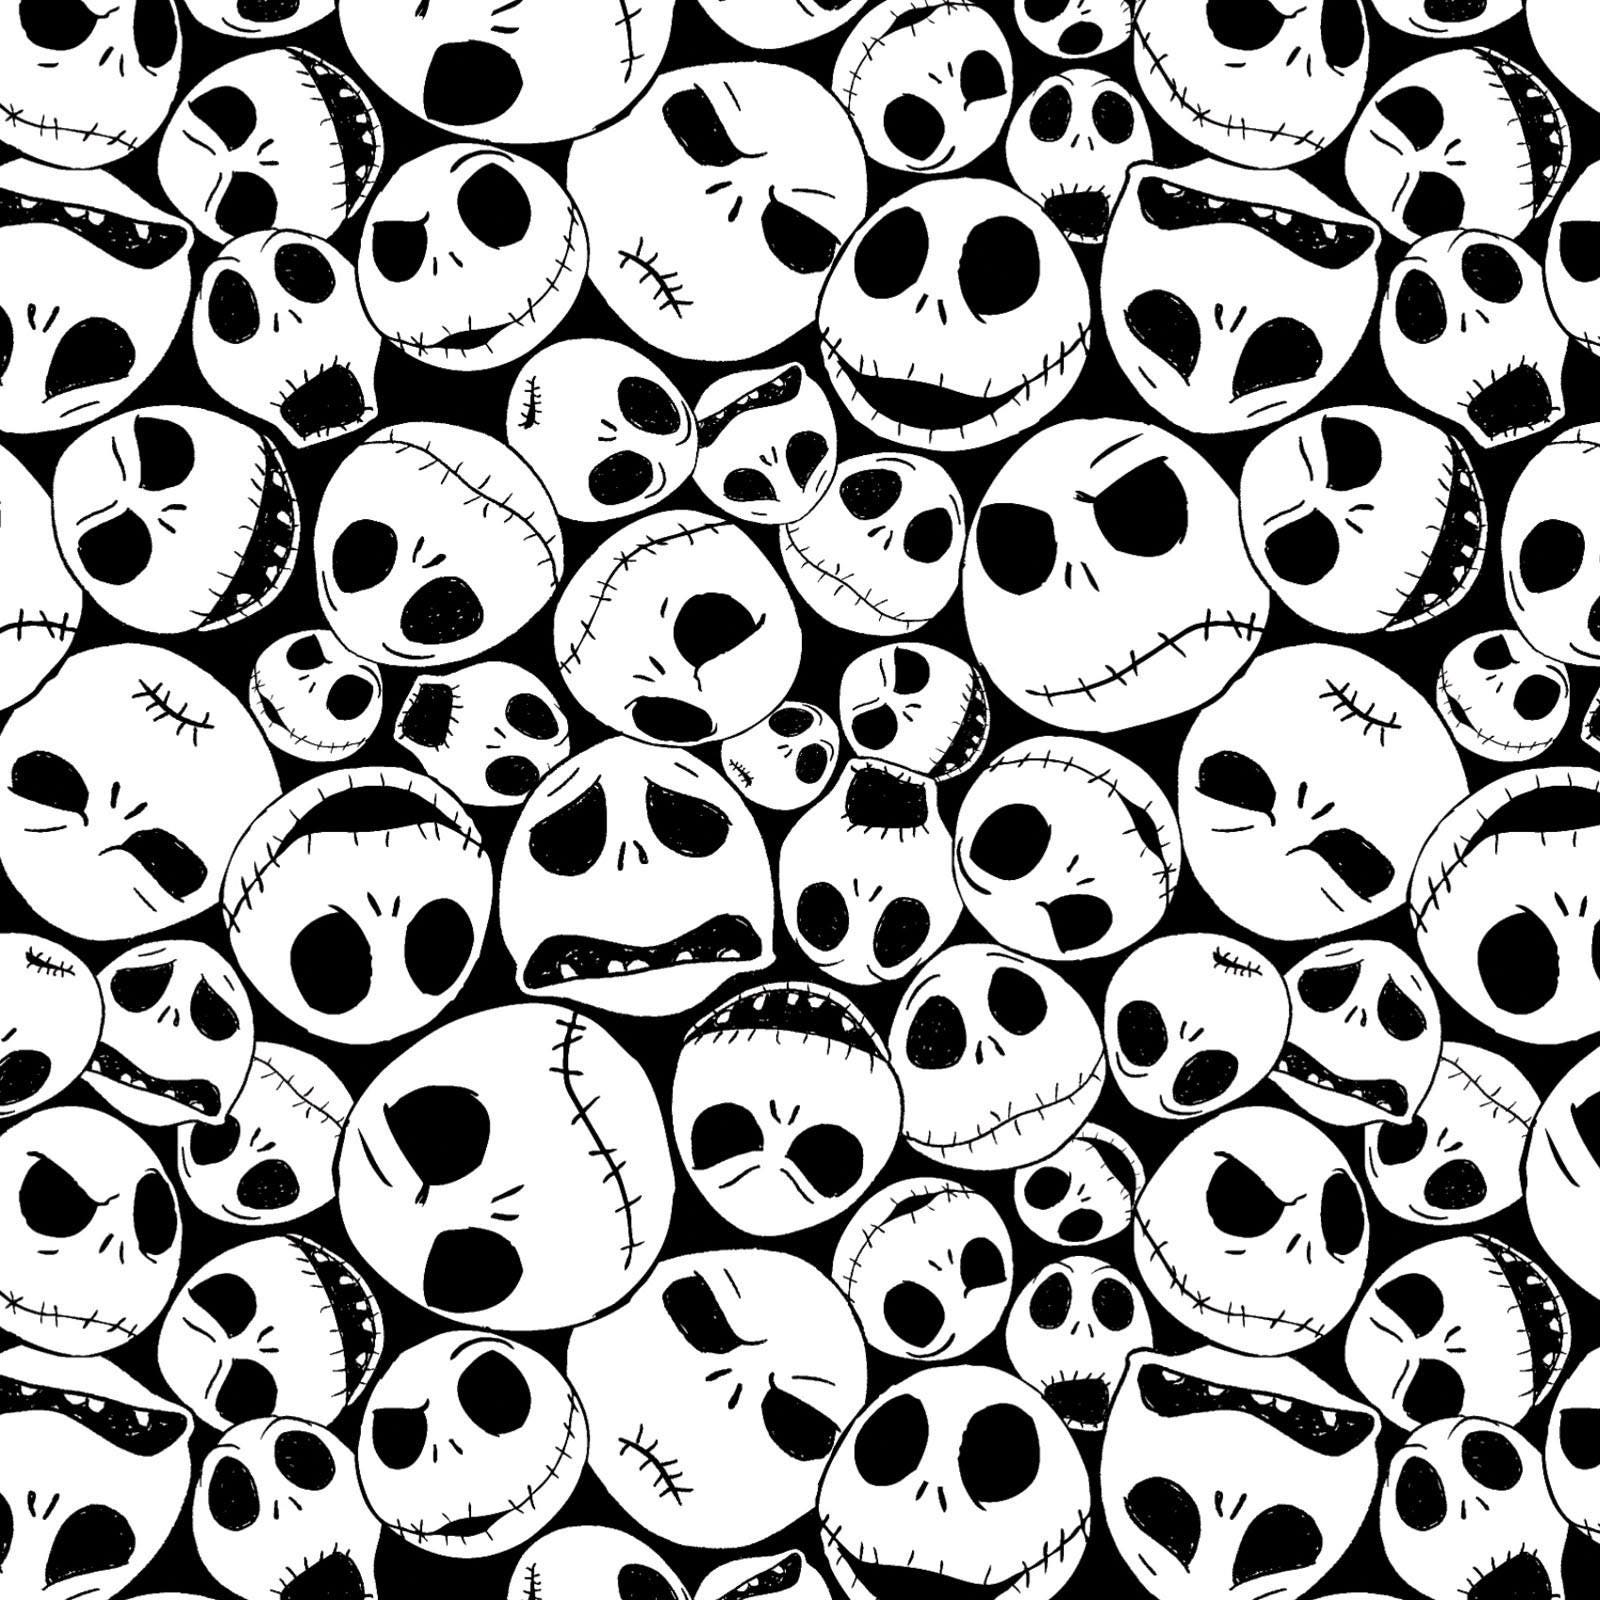 Nightmare Before Christmas Fabric For Sale